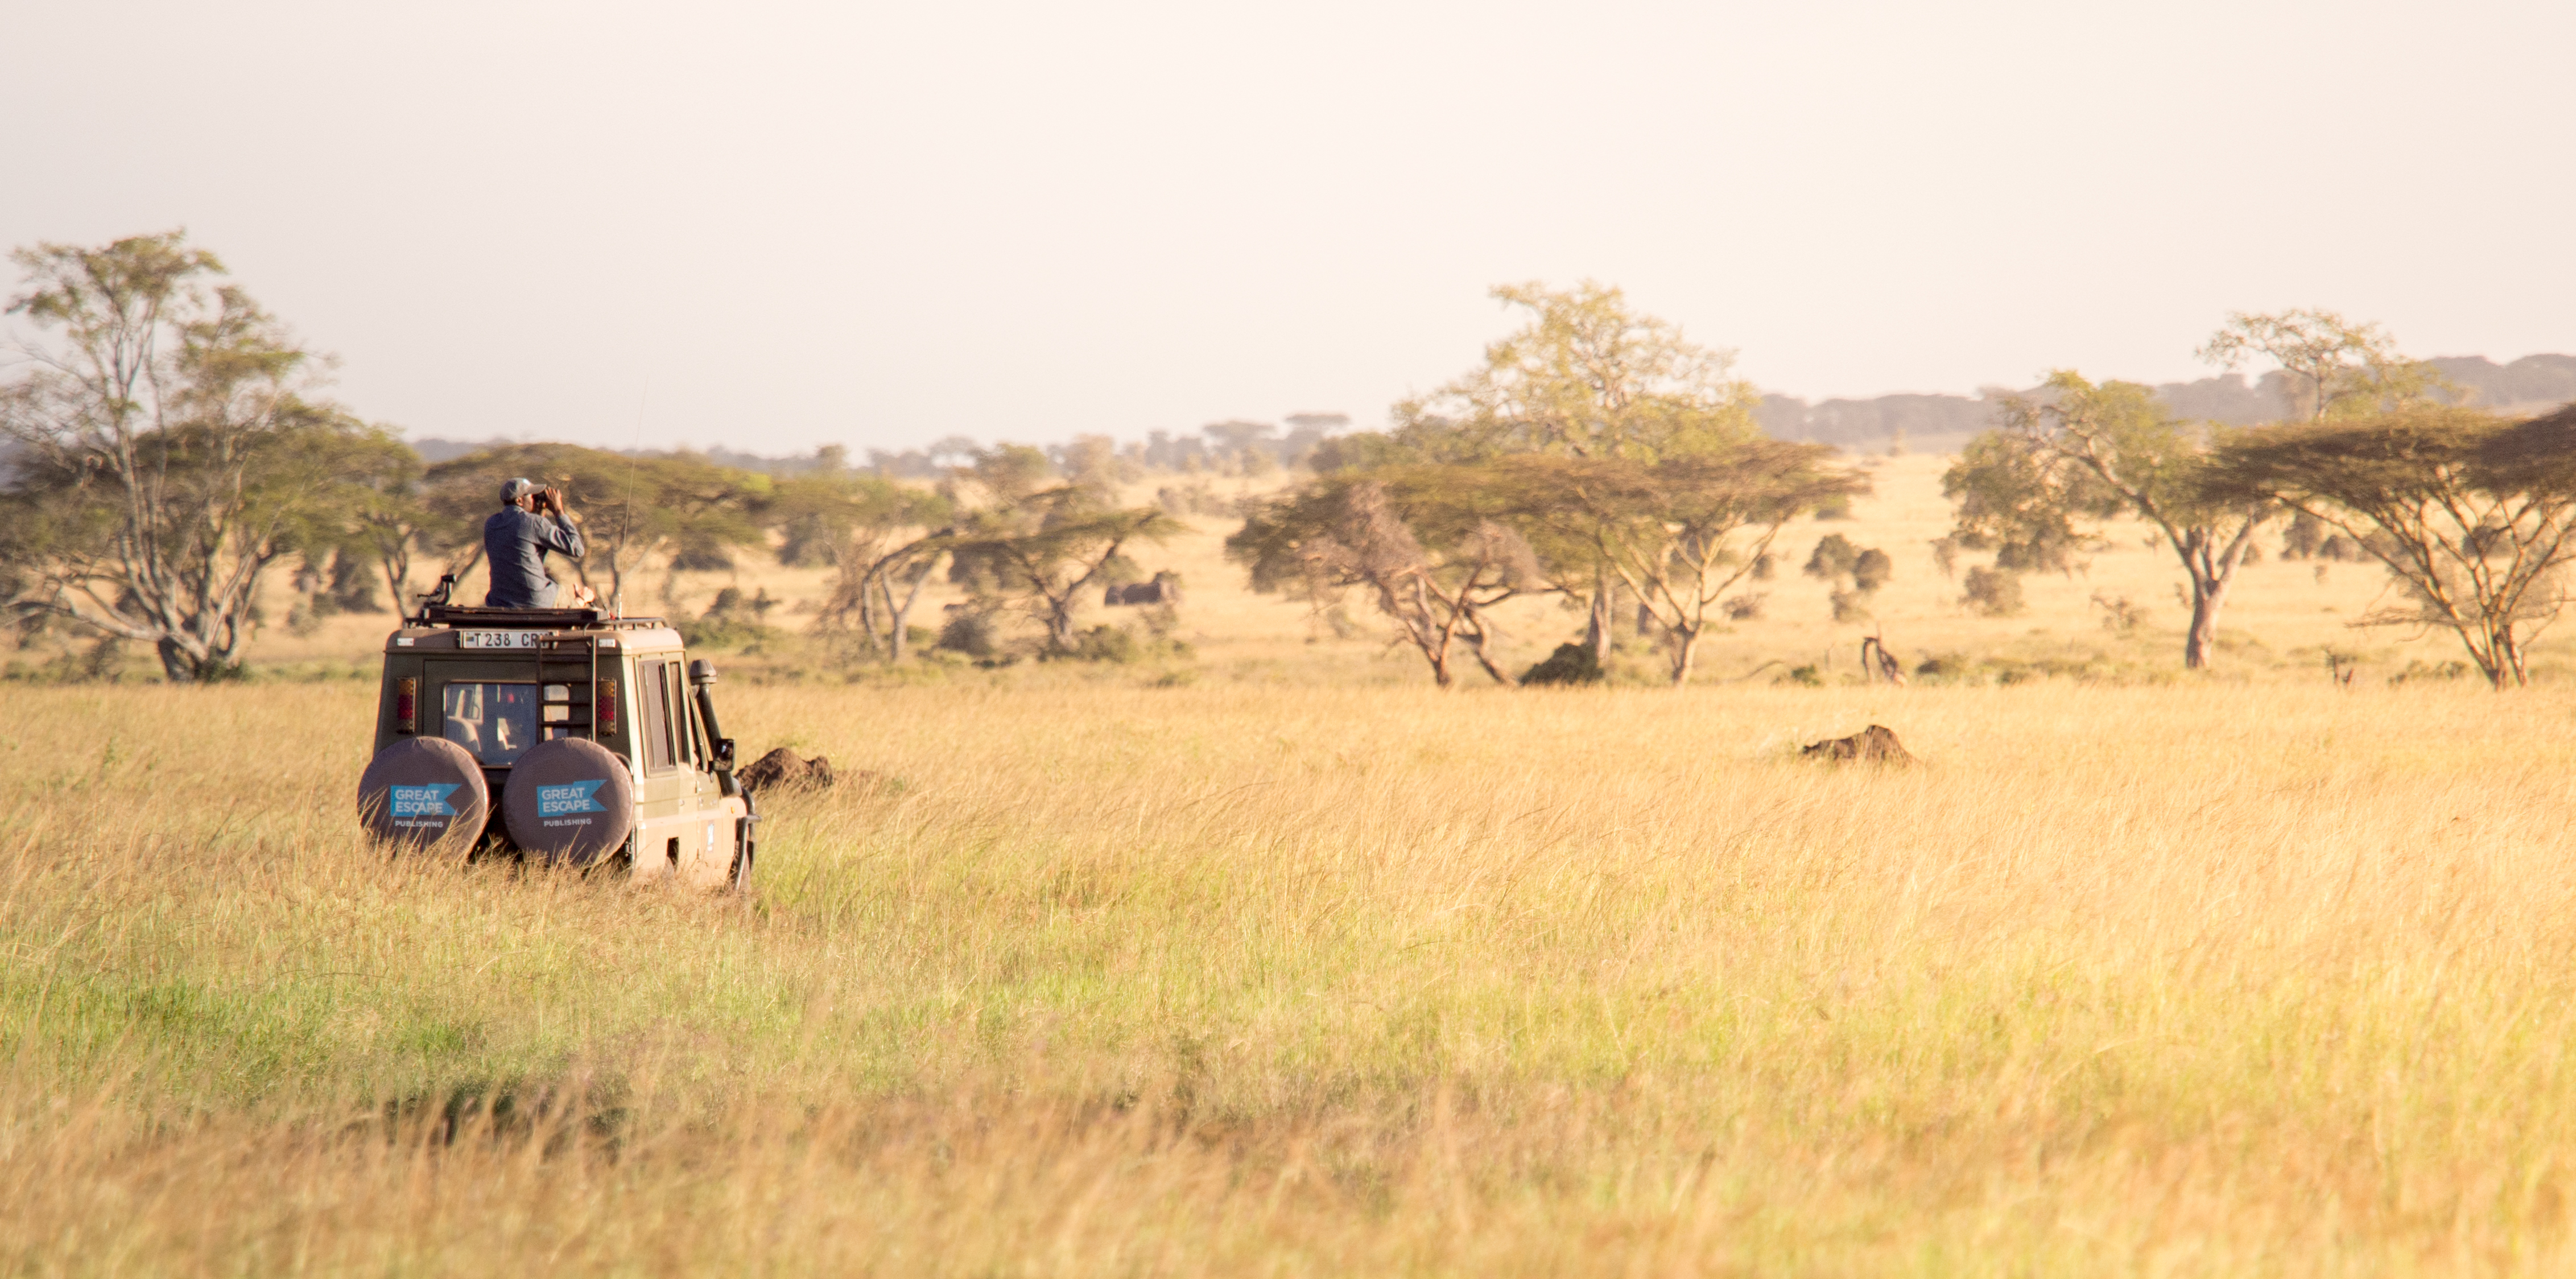 Another stop on our African photo safari is Central Serengeti